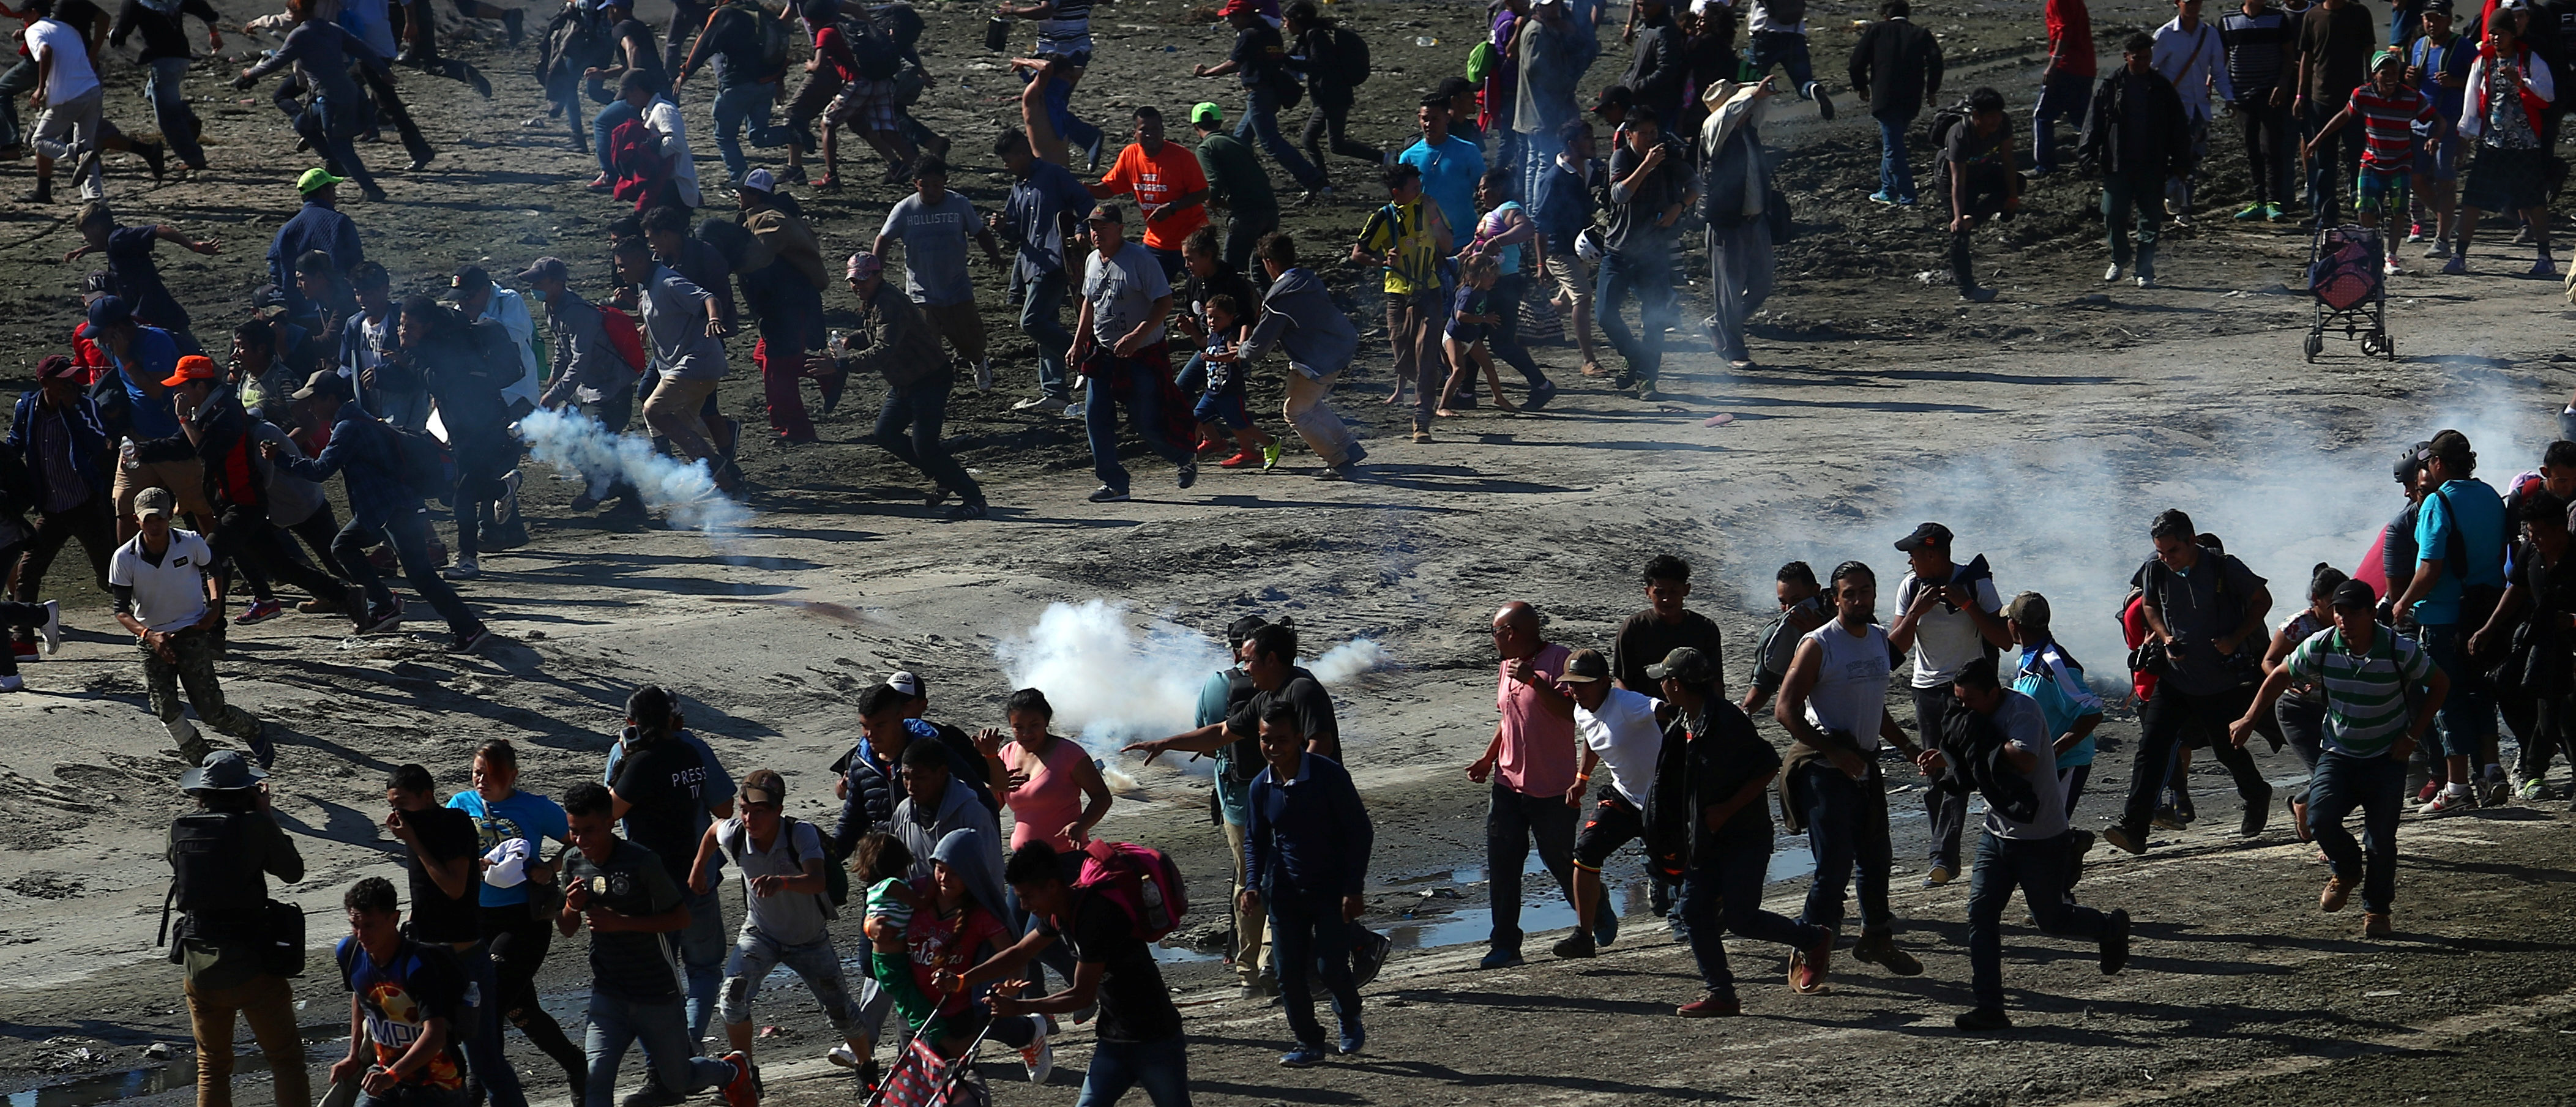 Migrants, part of a caravan of thousands from Central America trying to reach the United States, run from tear gas released by U.S border patrol, near the border fence between Mexico and the United States in Tijuana, Mexico, November 25, 2018. REUTERS/Hannah McKay